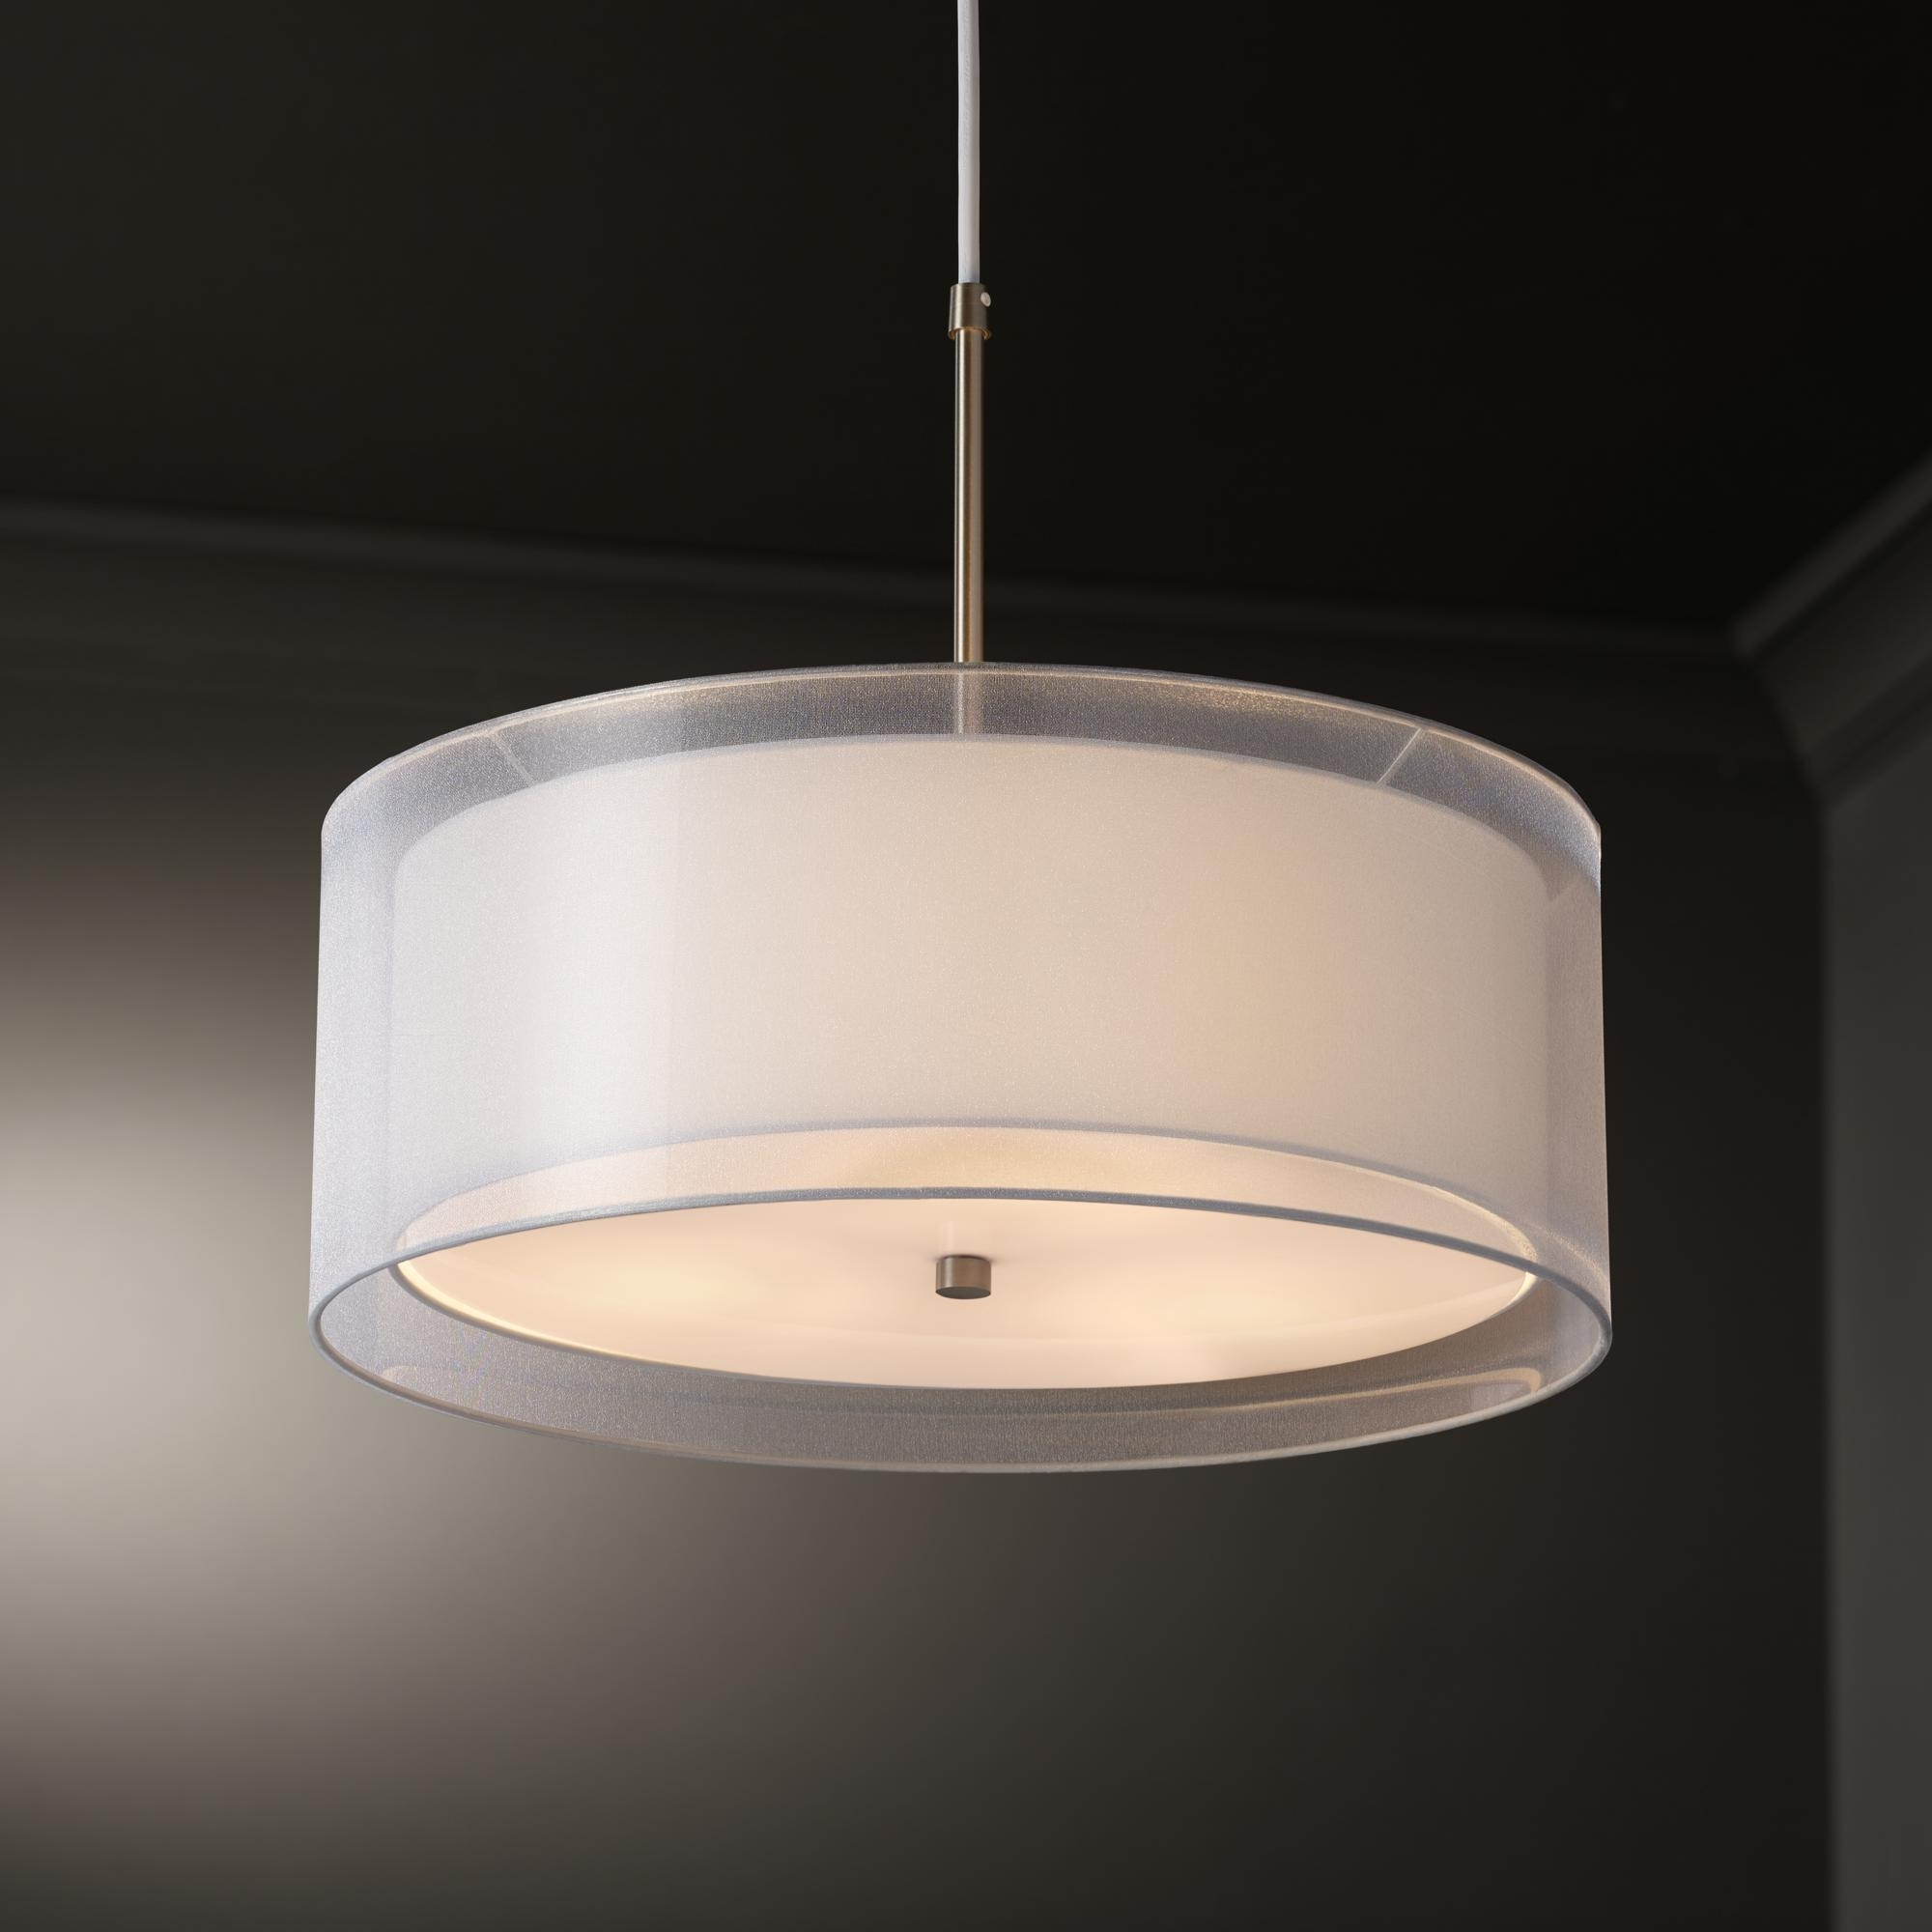 Preferred Drum Lamp Shades For Chandeliers With Lighting: Drum Lamp Shades For Chandeliers And Black Drum Shade (View 16 of 20)